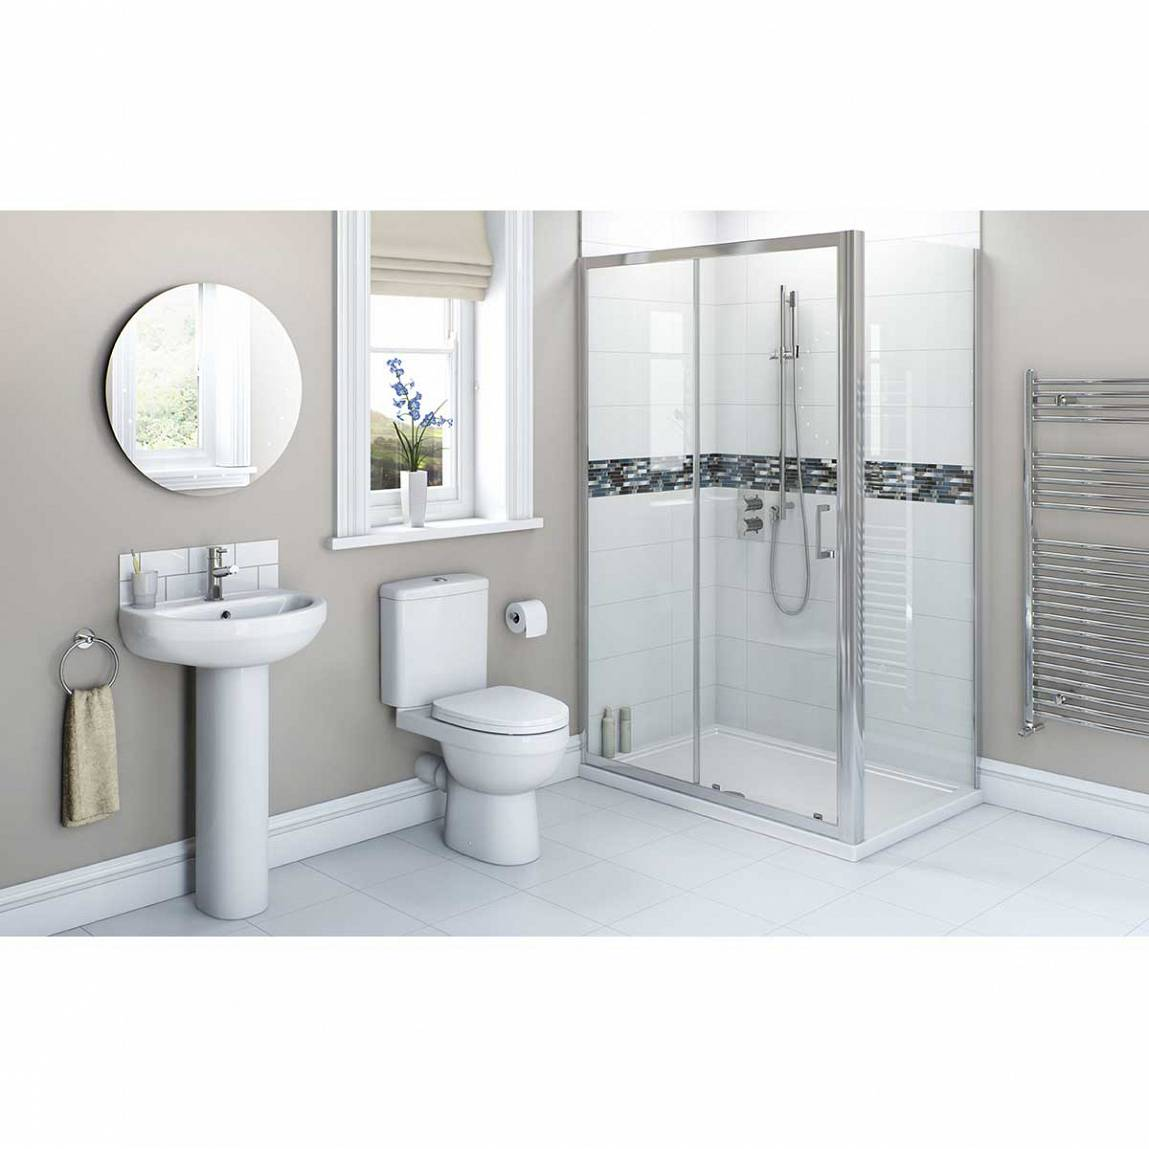 Image of Energy Bathroom set with 1200x800 Sliding Enclosure & Tray